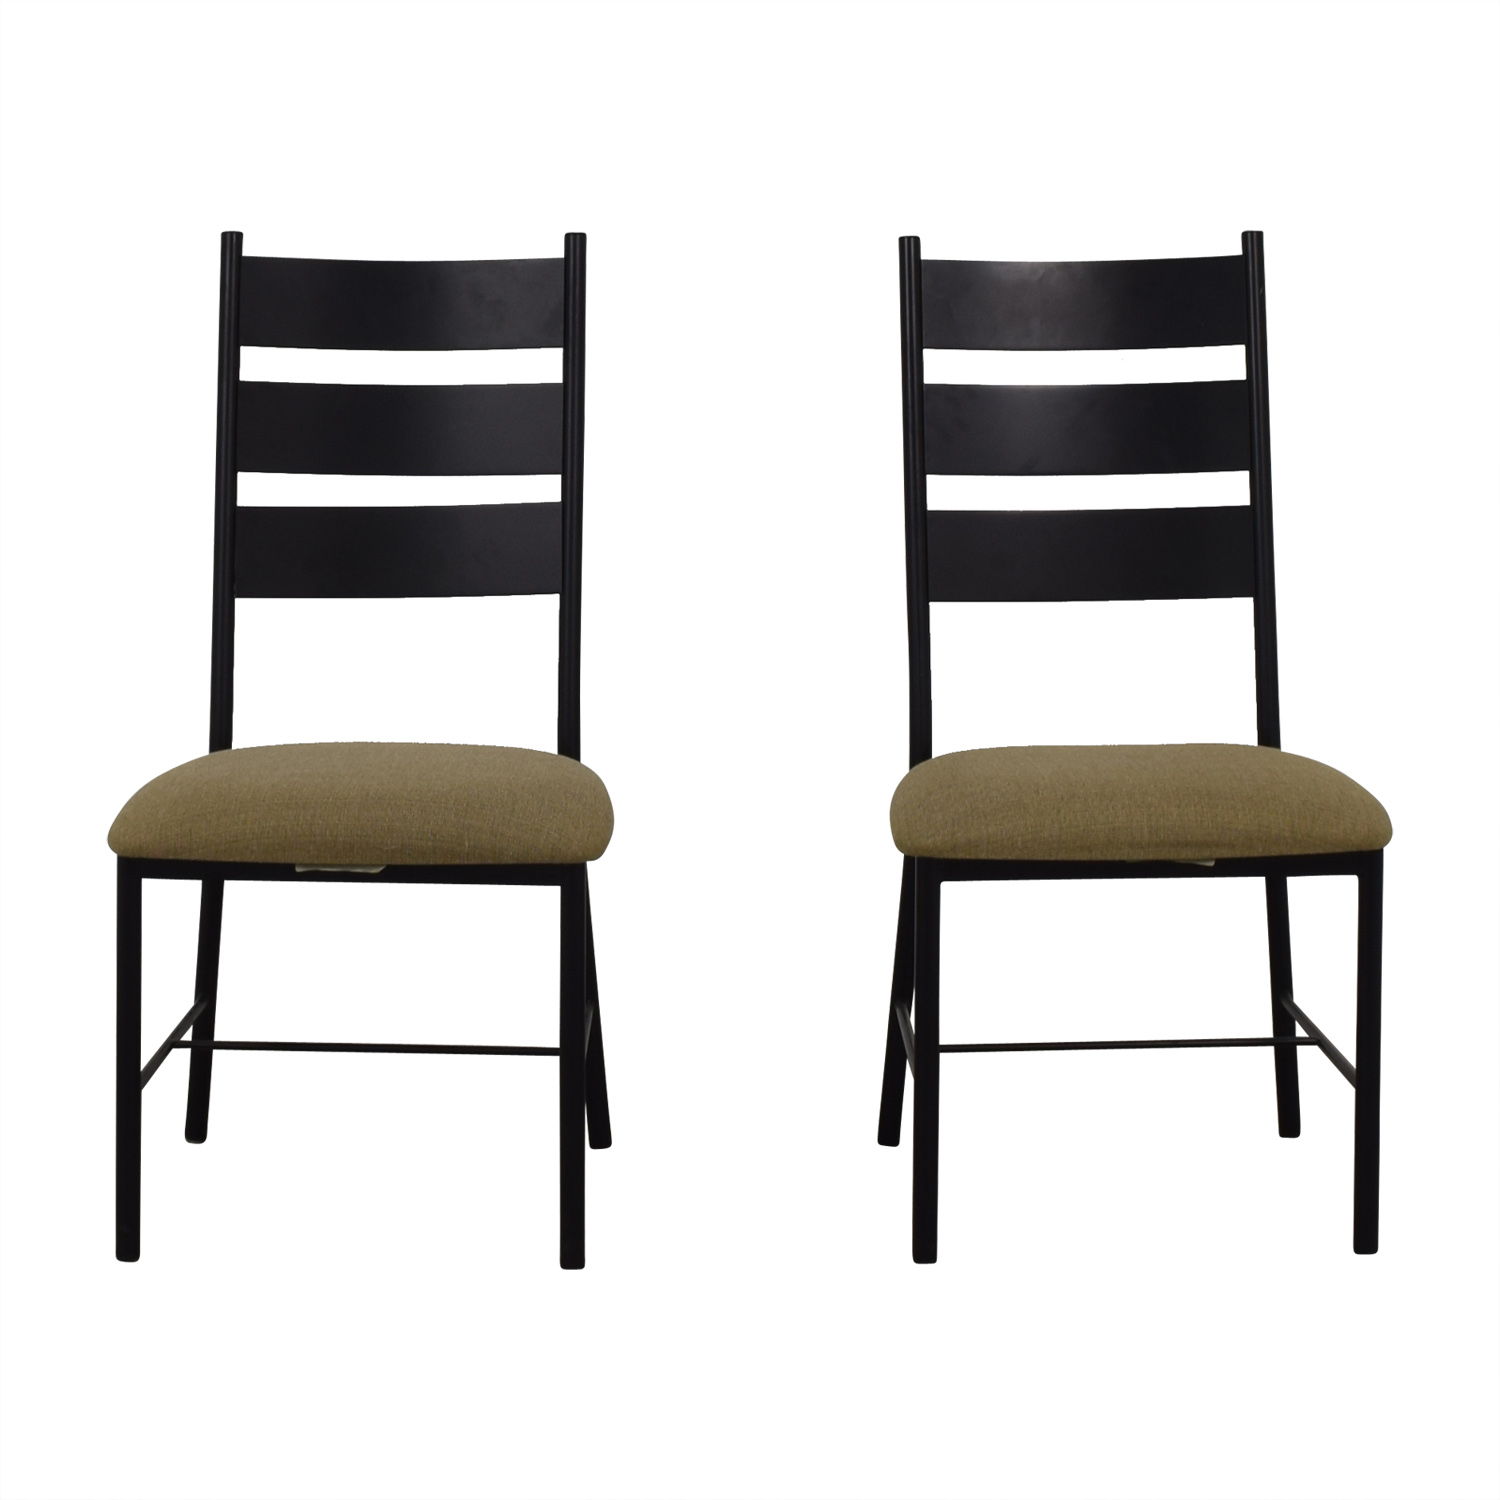 buy Room & Board Room & Board Beige Upholstered Chairs online